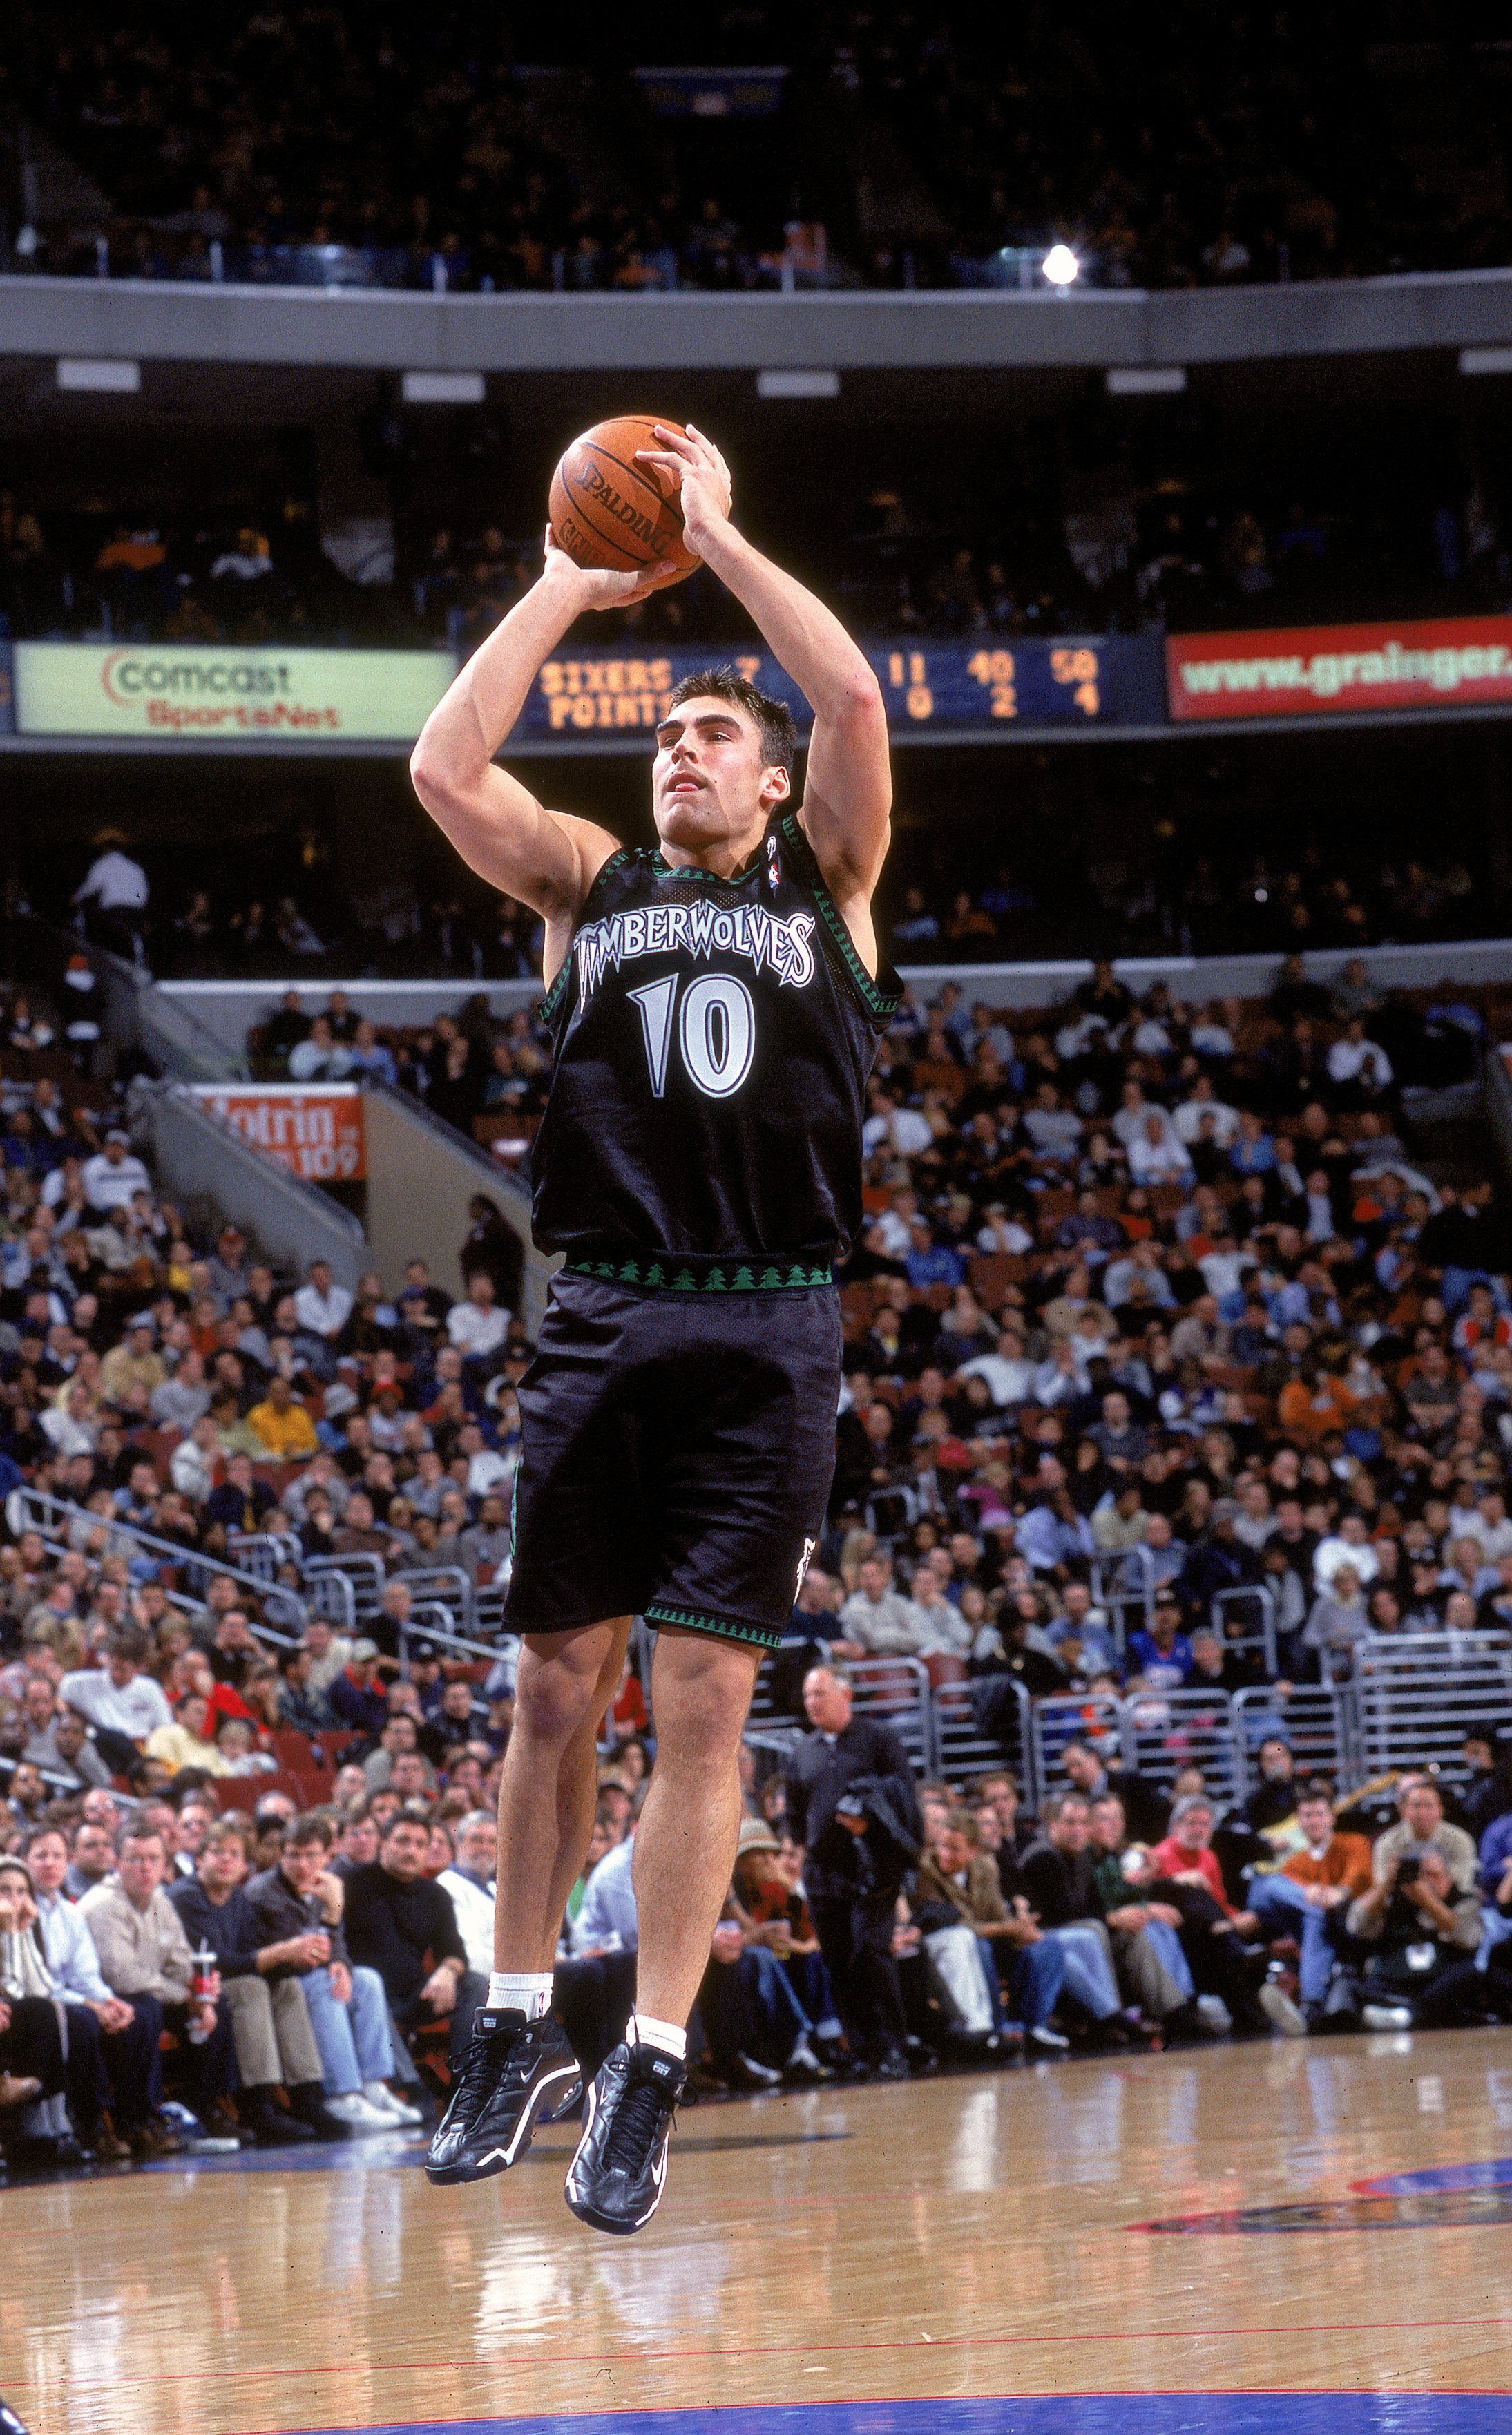 cee35f6cdce0 11 Dec 2000  Wally Szczerbiak  10 of the Minnesota Timberwolves takes a  shot during